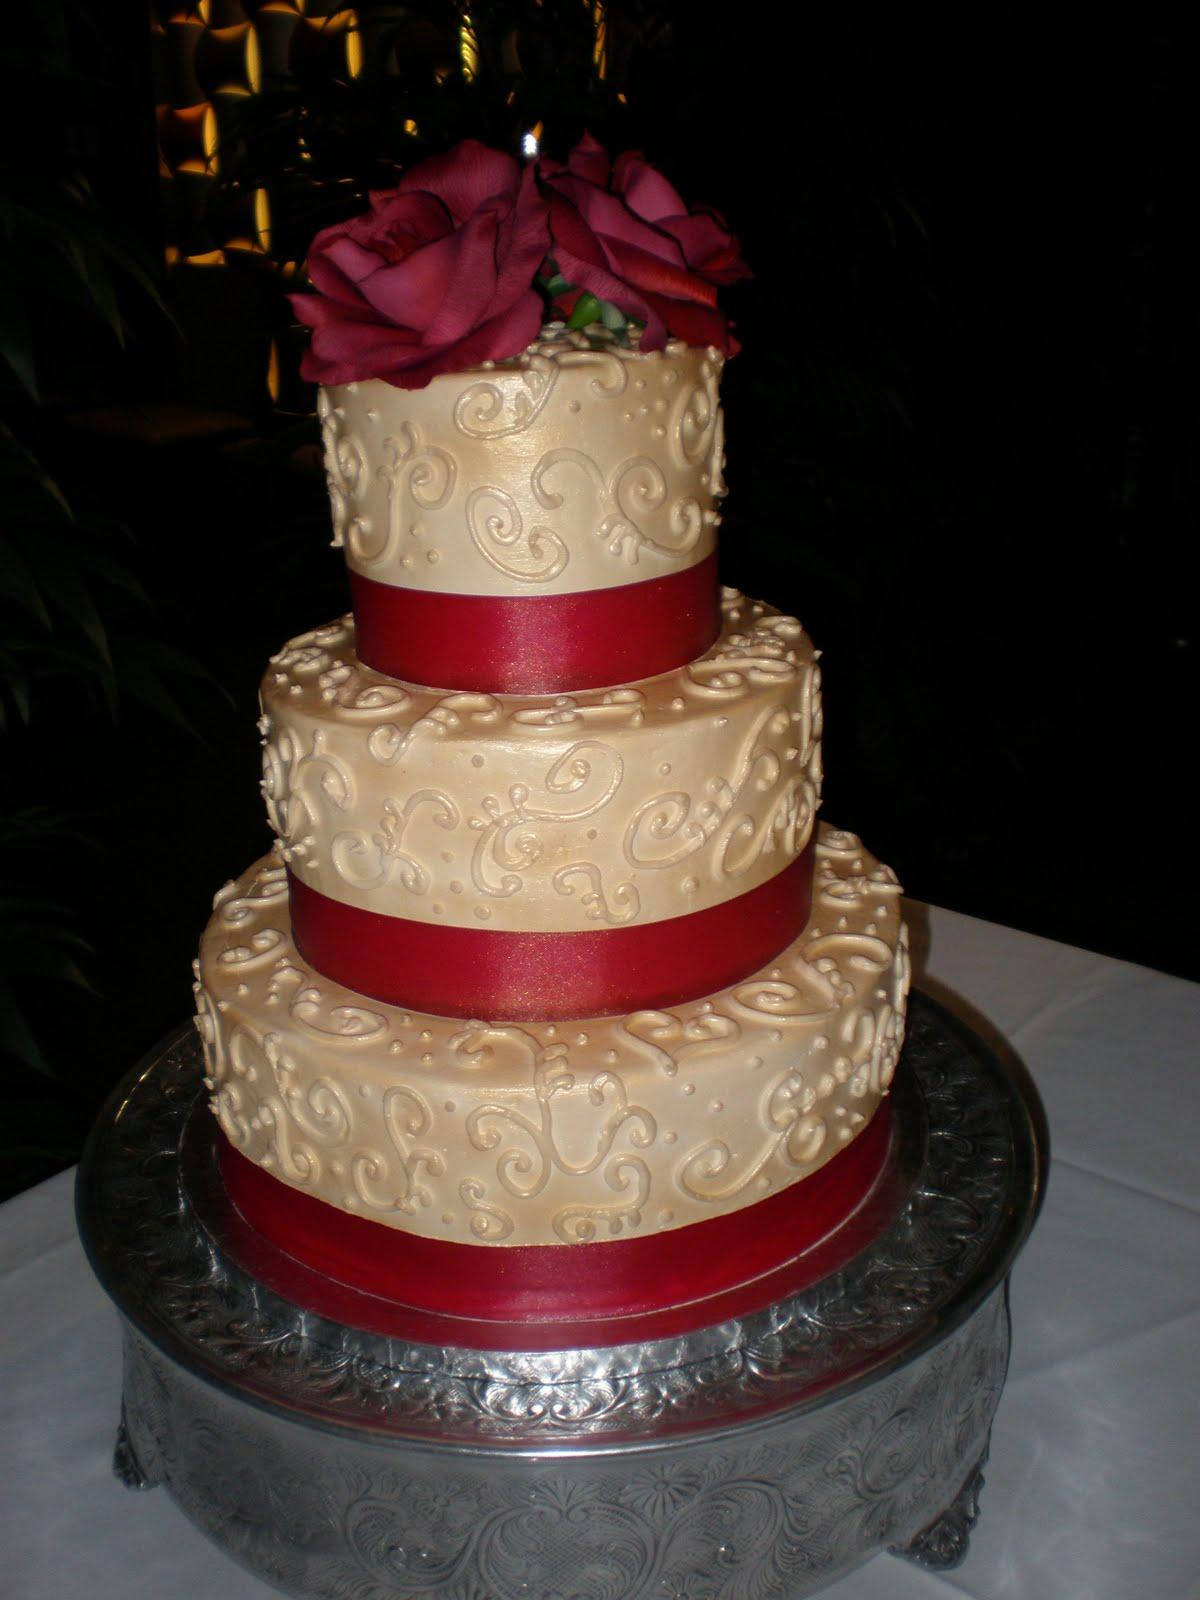 Labels: Wedding Cakes